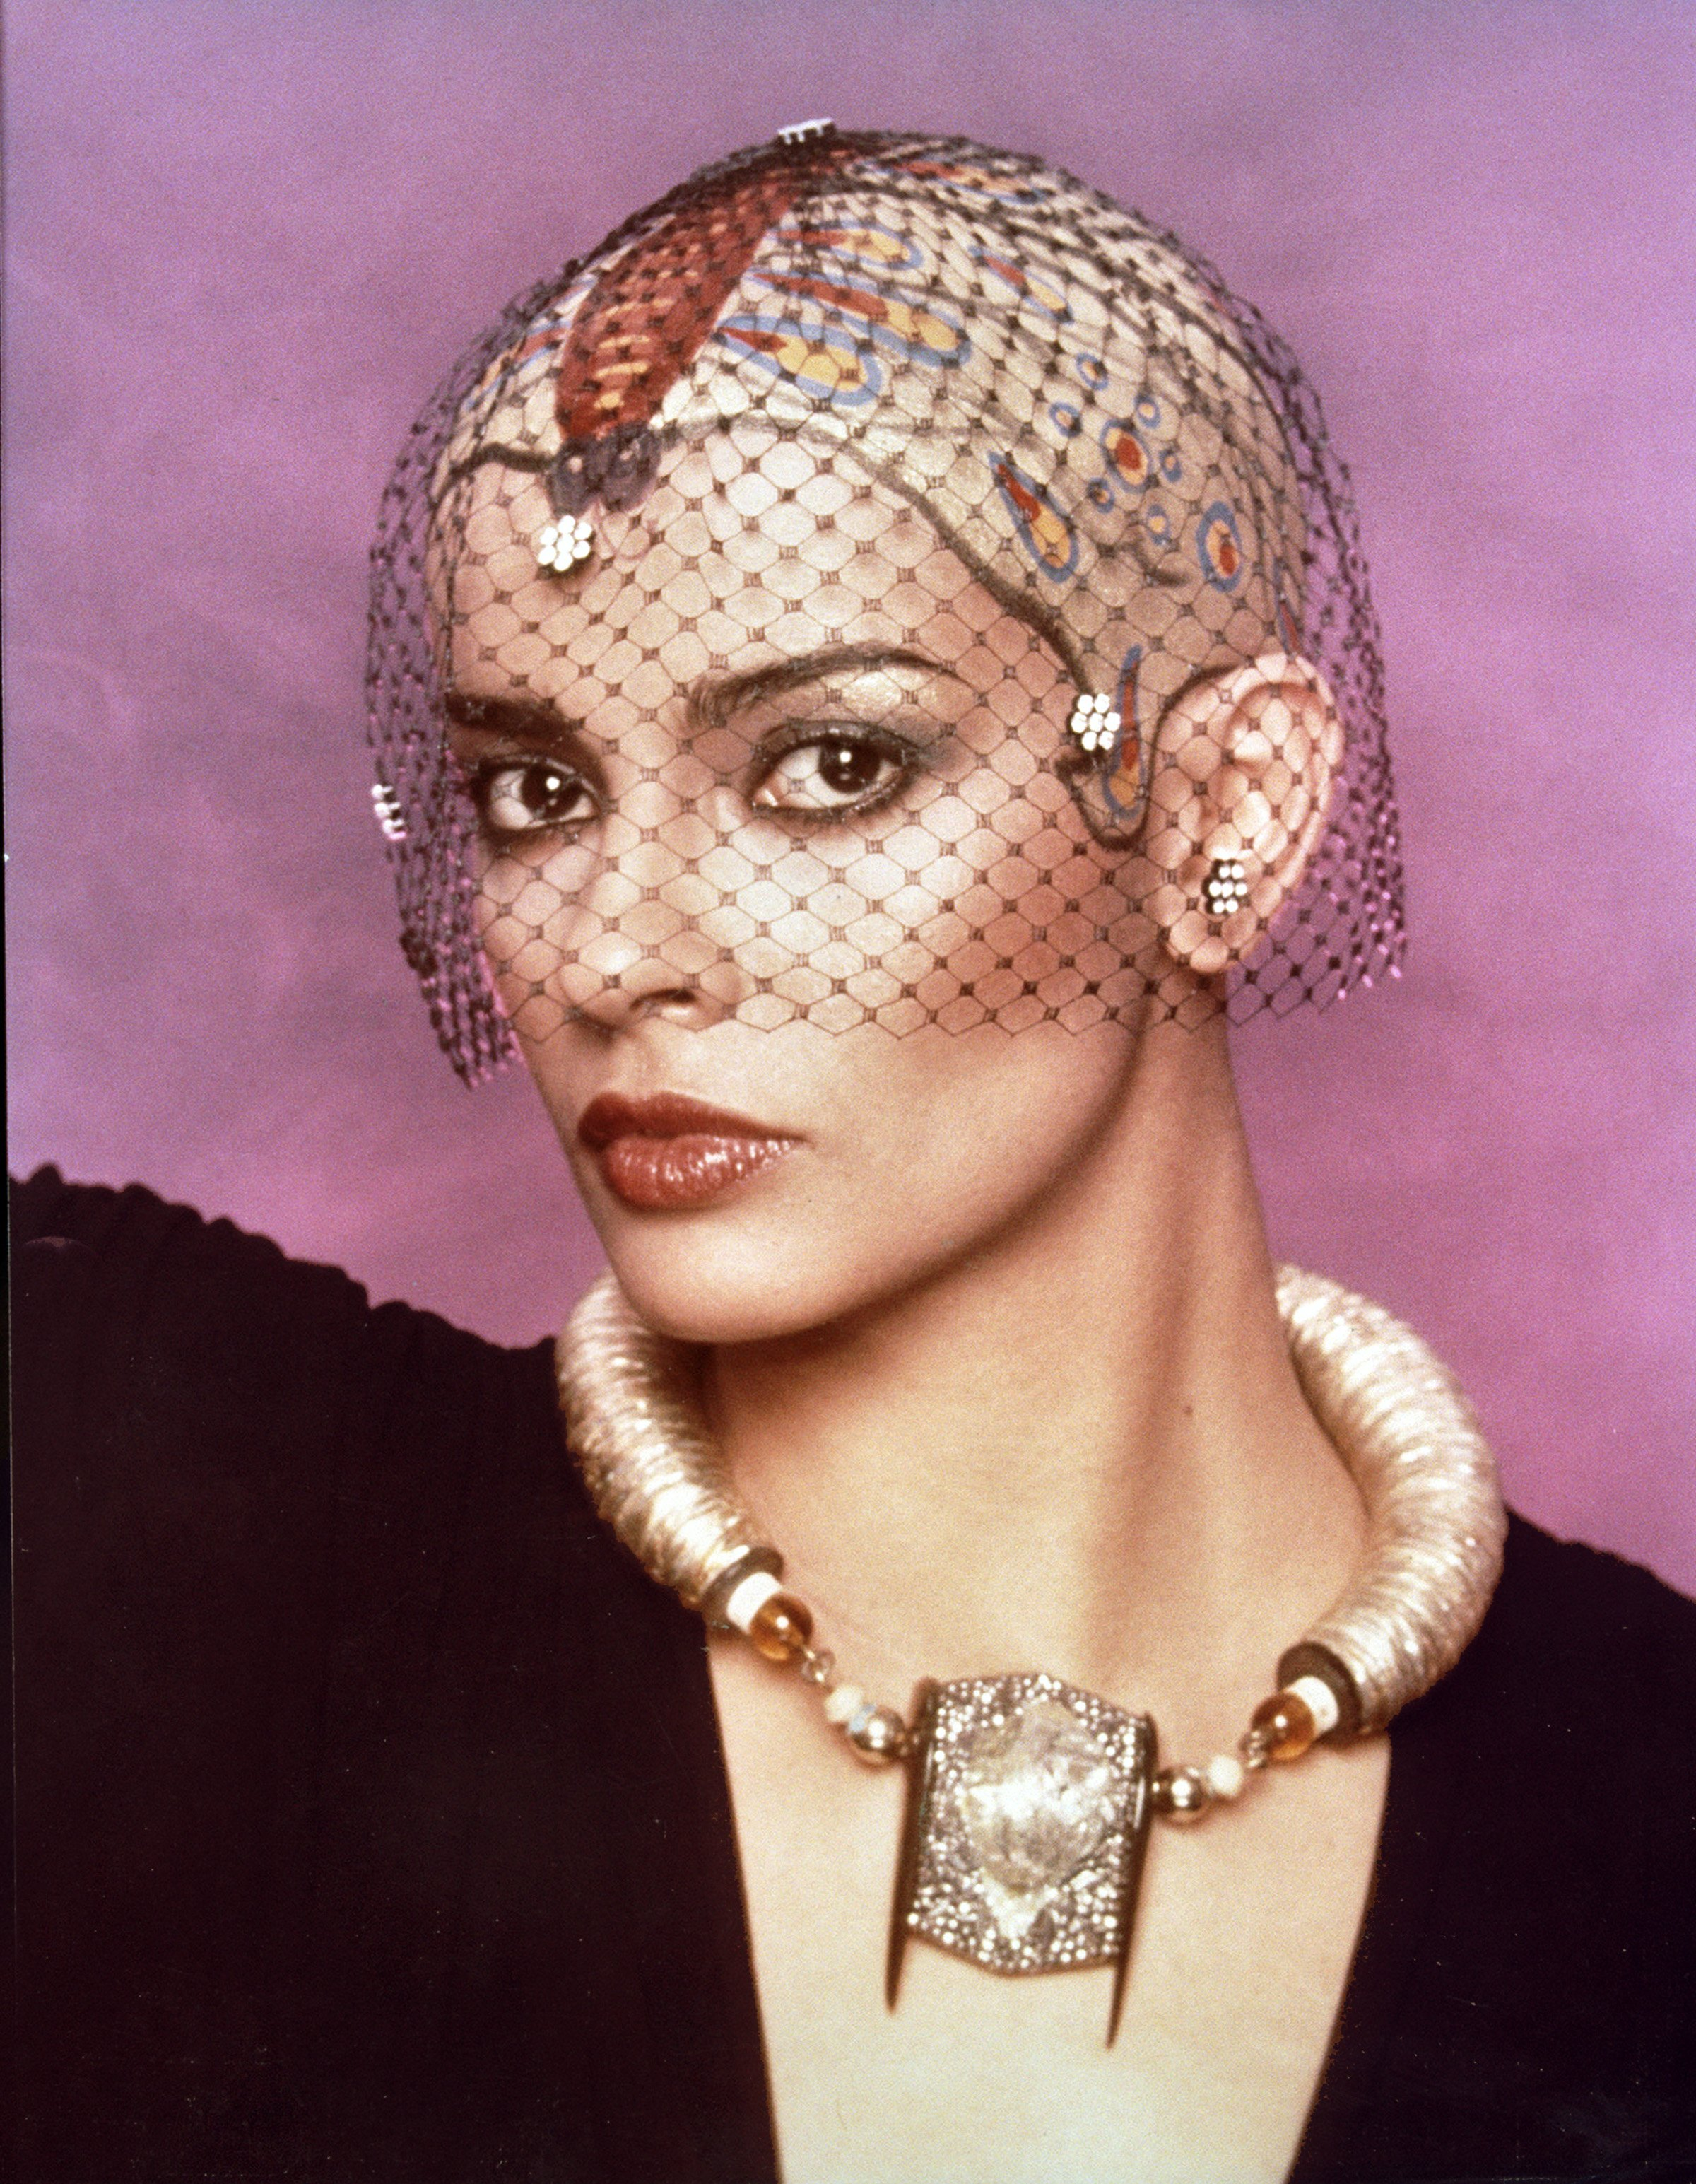 persis khambatta net worth